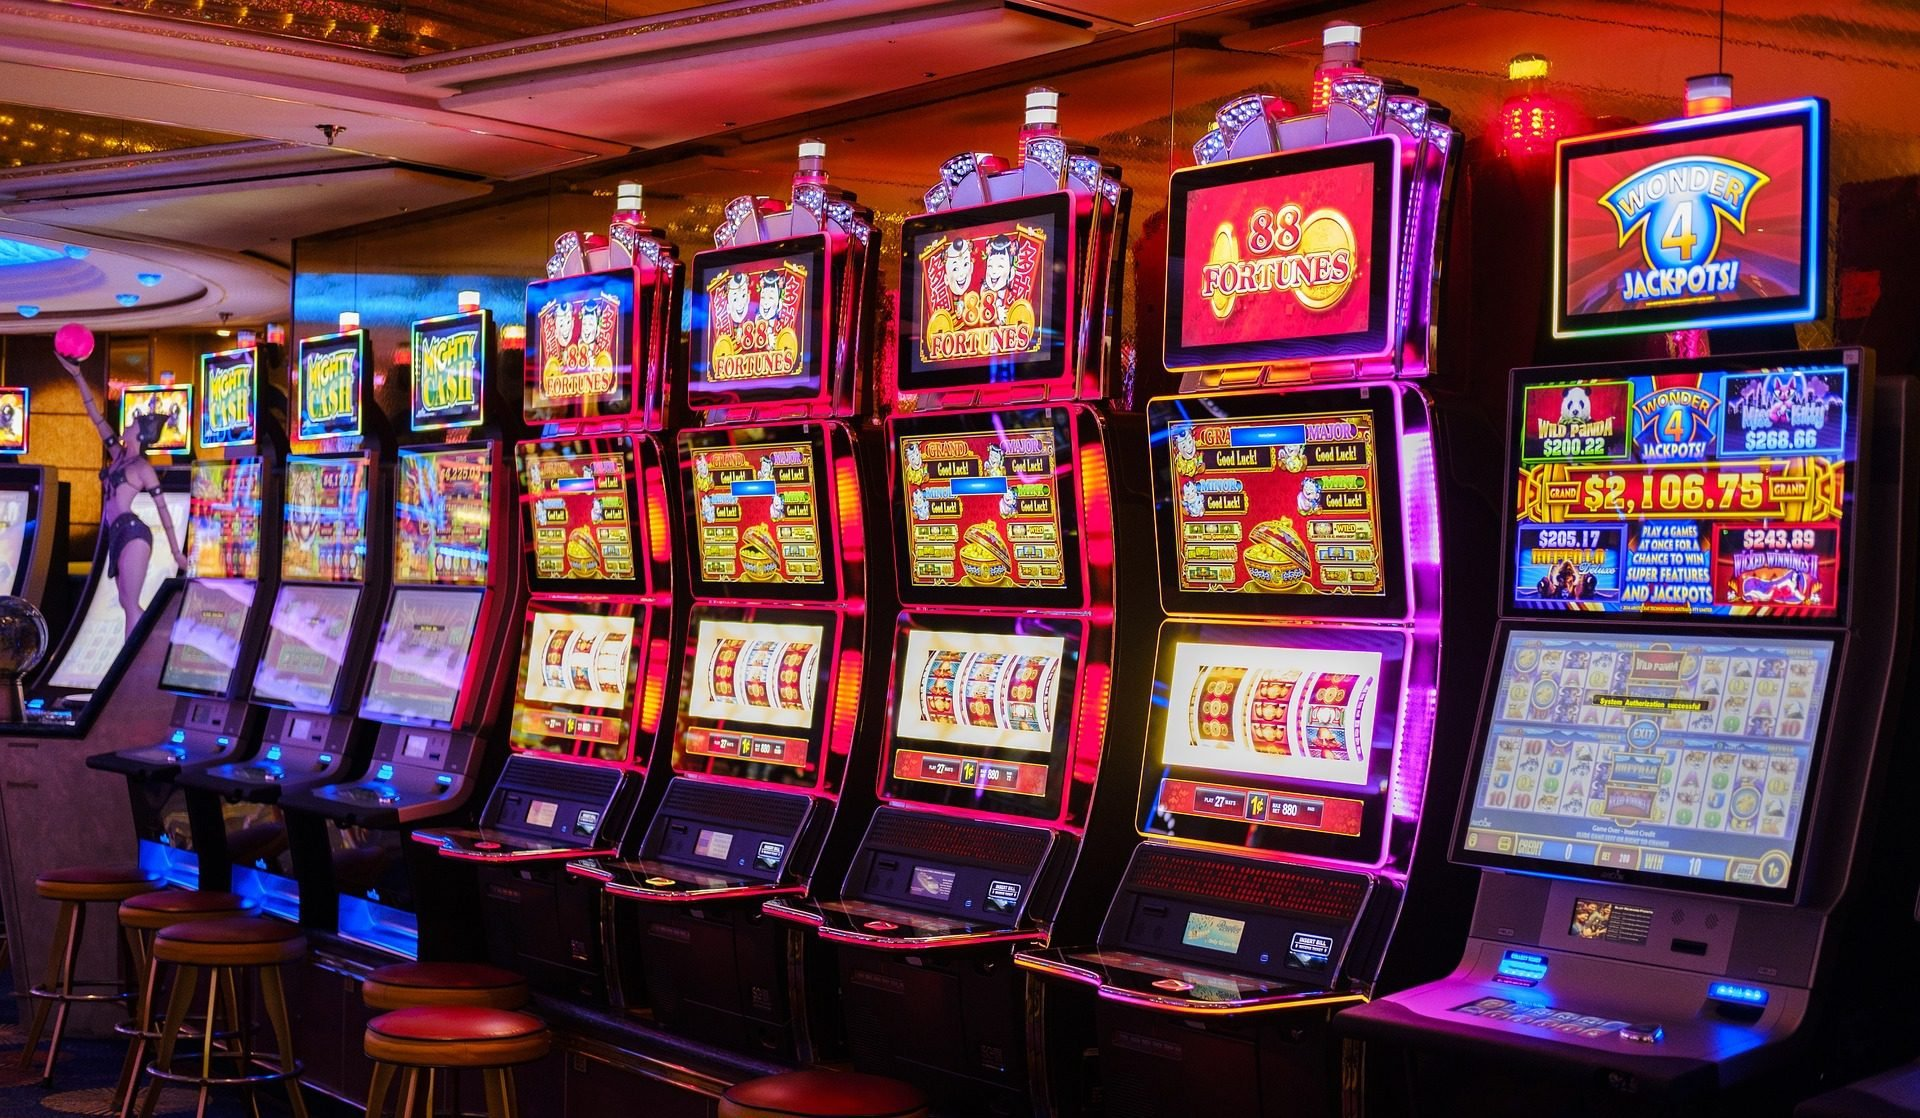 CT casinos report slot revenue increases in January